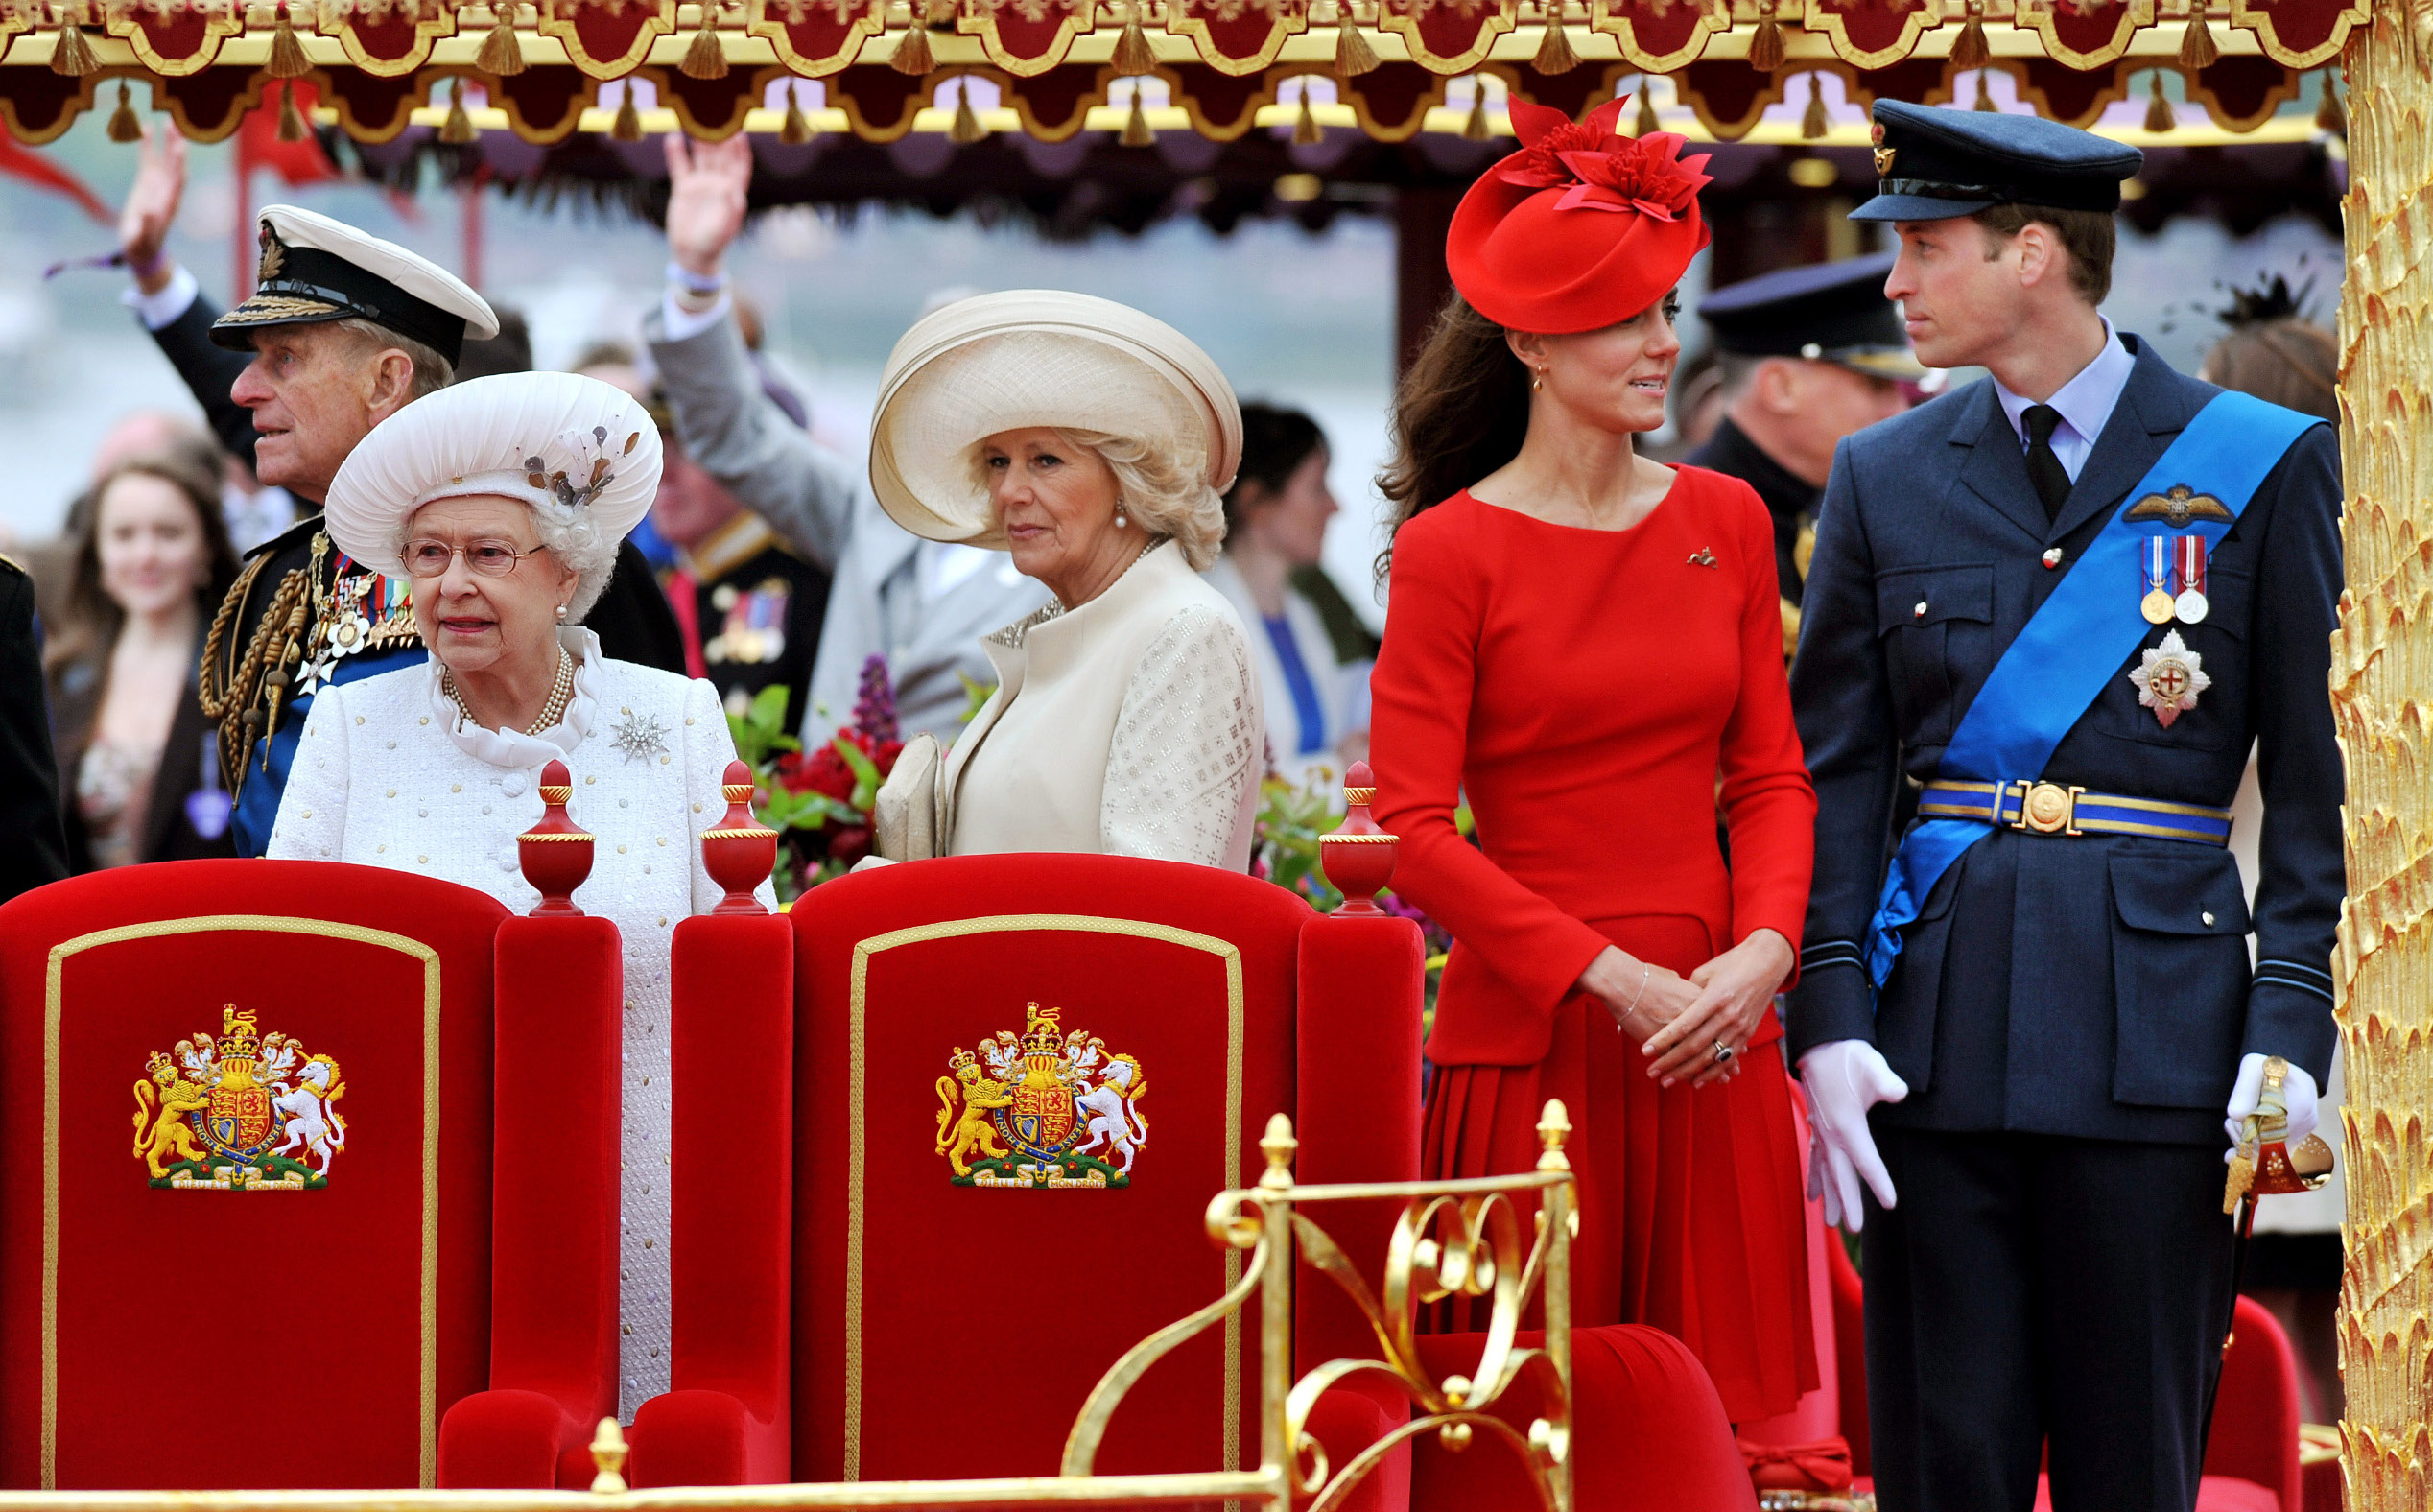 LONDON, ENGLAND - JUNE 03: (L-R) Prince Philip, The Duke of Edinburgh, Queen Elizabeth II, Camilla, Duchess of Cornwall, Catherine, Duchess of Cambridge and Prince William, Duke of Cambridge onboard the Spirit of Chartwell during the Diamond Jubilee Pageant on the River Thames during the Diamond Jubilee Thames River Pageant on June 3, 2012 in London, England. For only the second time in its history the UK celebrates the Diamond Jubilee of a monarch. Her Majesty Queen Elizabeth II celebrates the 60th anniversary of her ascension to the throne. Thousands of well-wishers from around the world have flocked to London to witness the spectacle of the weekend's celebrations. The Queen along with all members of the royal family will participate in a River Pageant with a flotilla of a 1,000 boats accompanying them down The Thames, the star studded free concert at Buckingham Palace, and a carriage procession and a service of thanksgiving at St Paul's Cathedral.  (Photo by John Stillwell - WPA Pool/Getty Images)